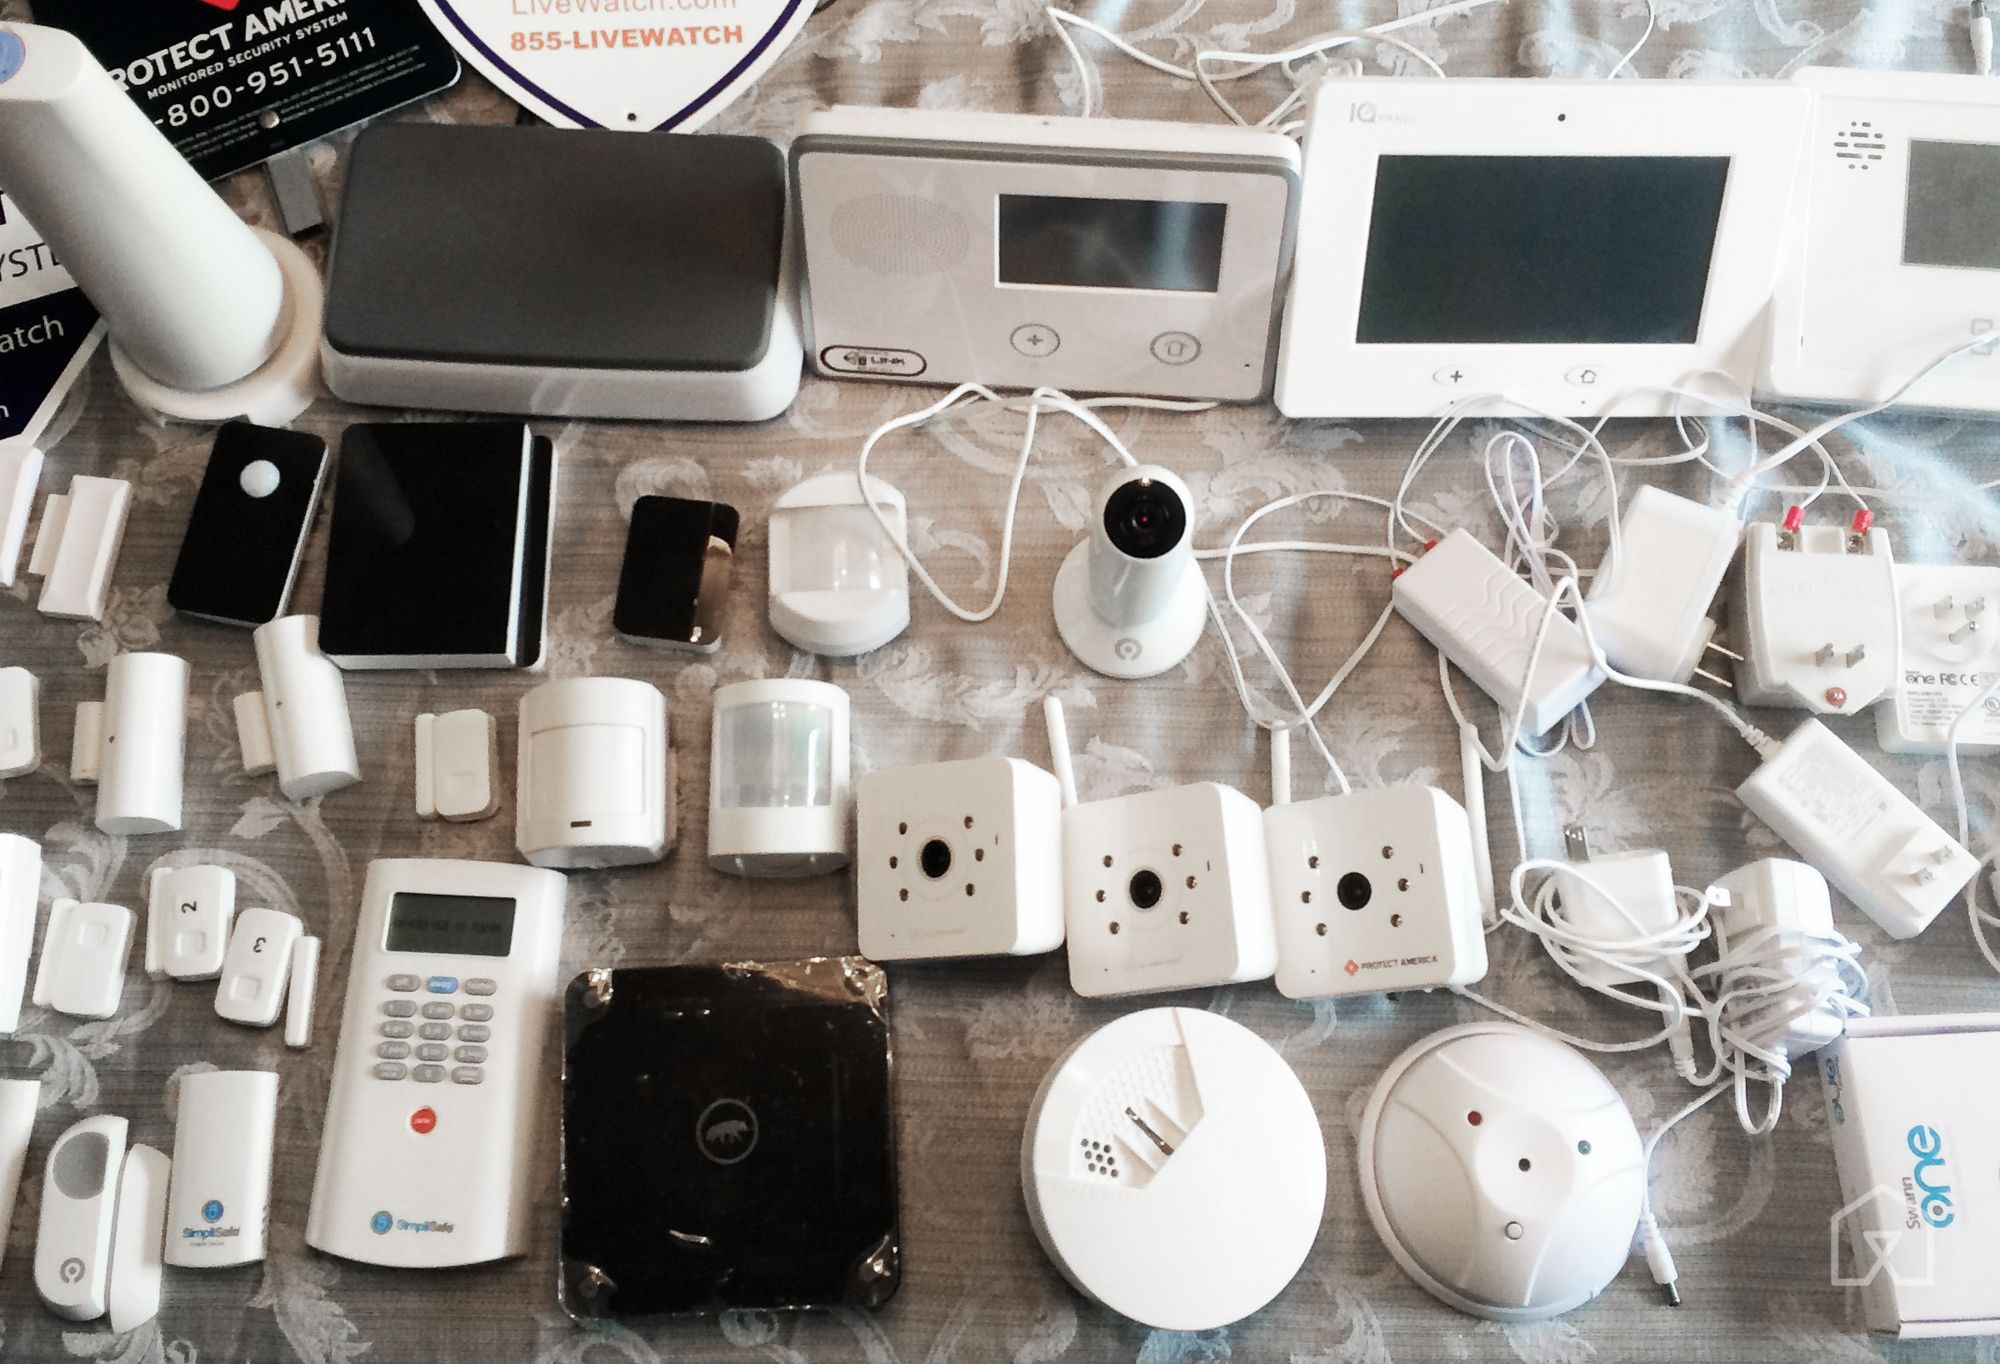 The Best Home Security System Best Home Security System Best Home Security Security Cameras For Home